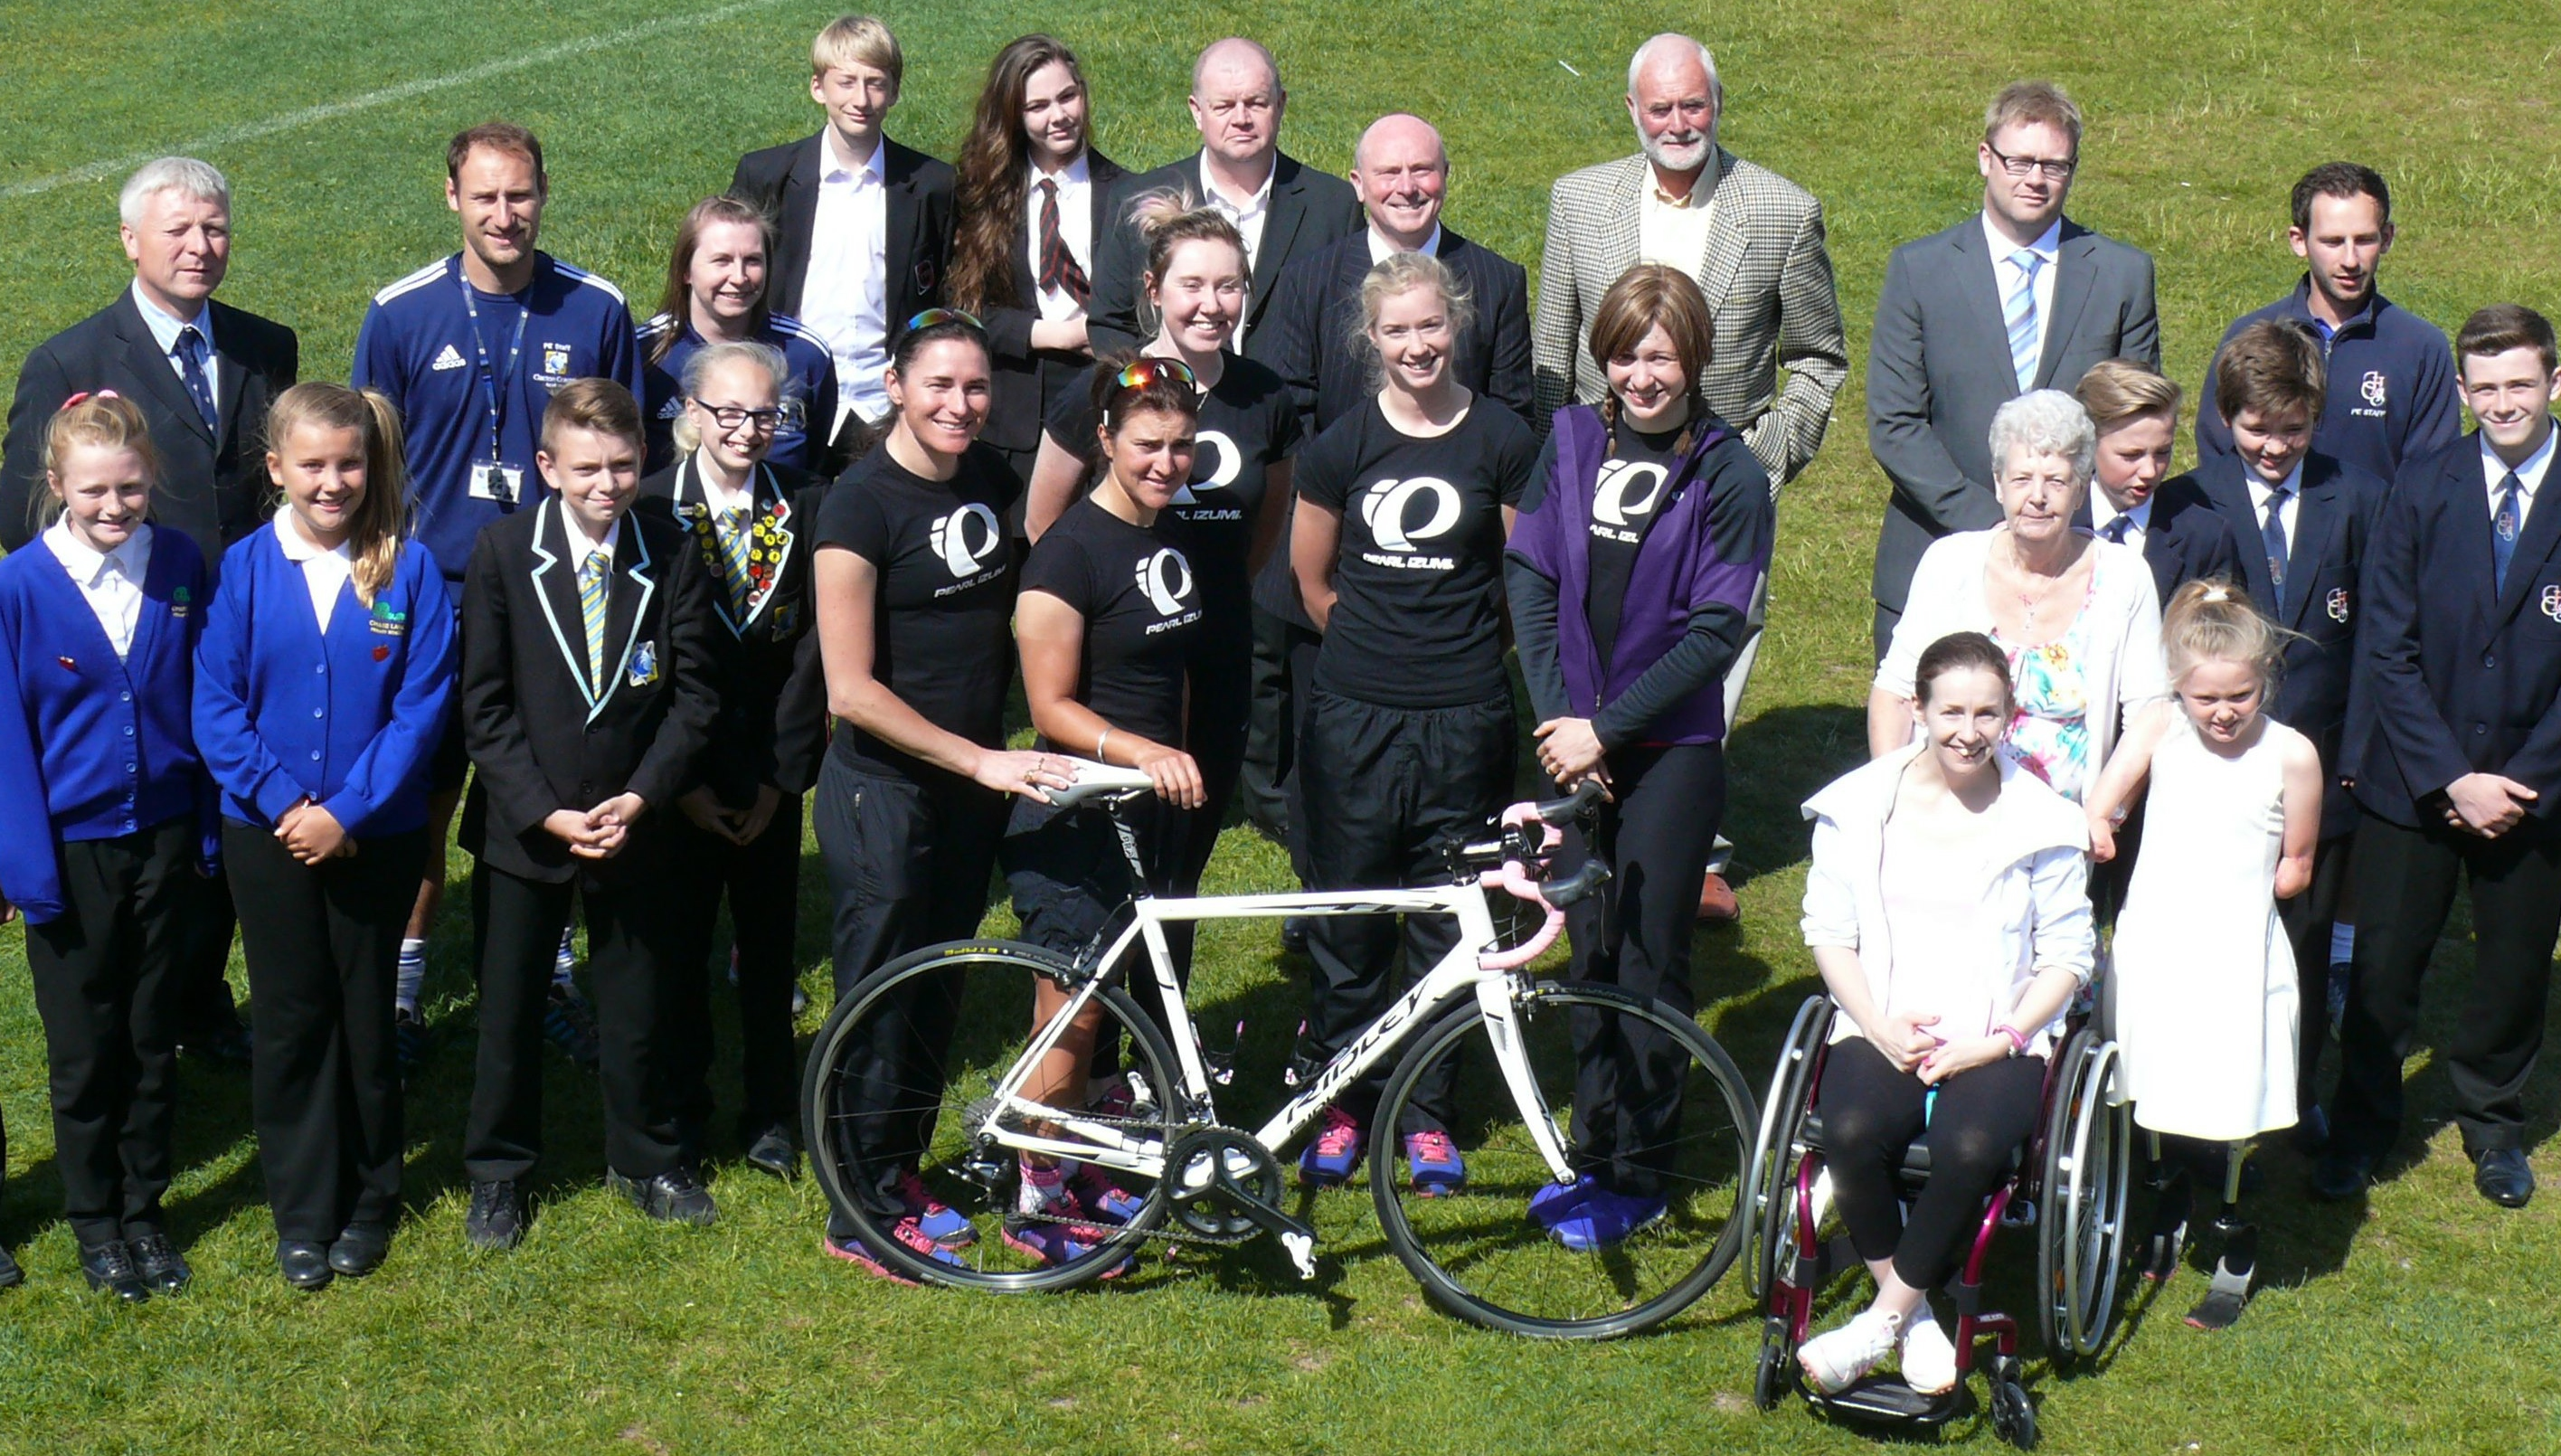 12-time Gold medallist rides into Clacton with her team